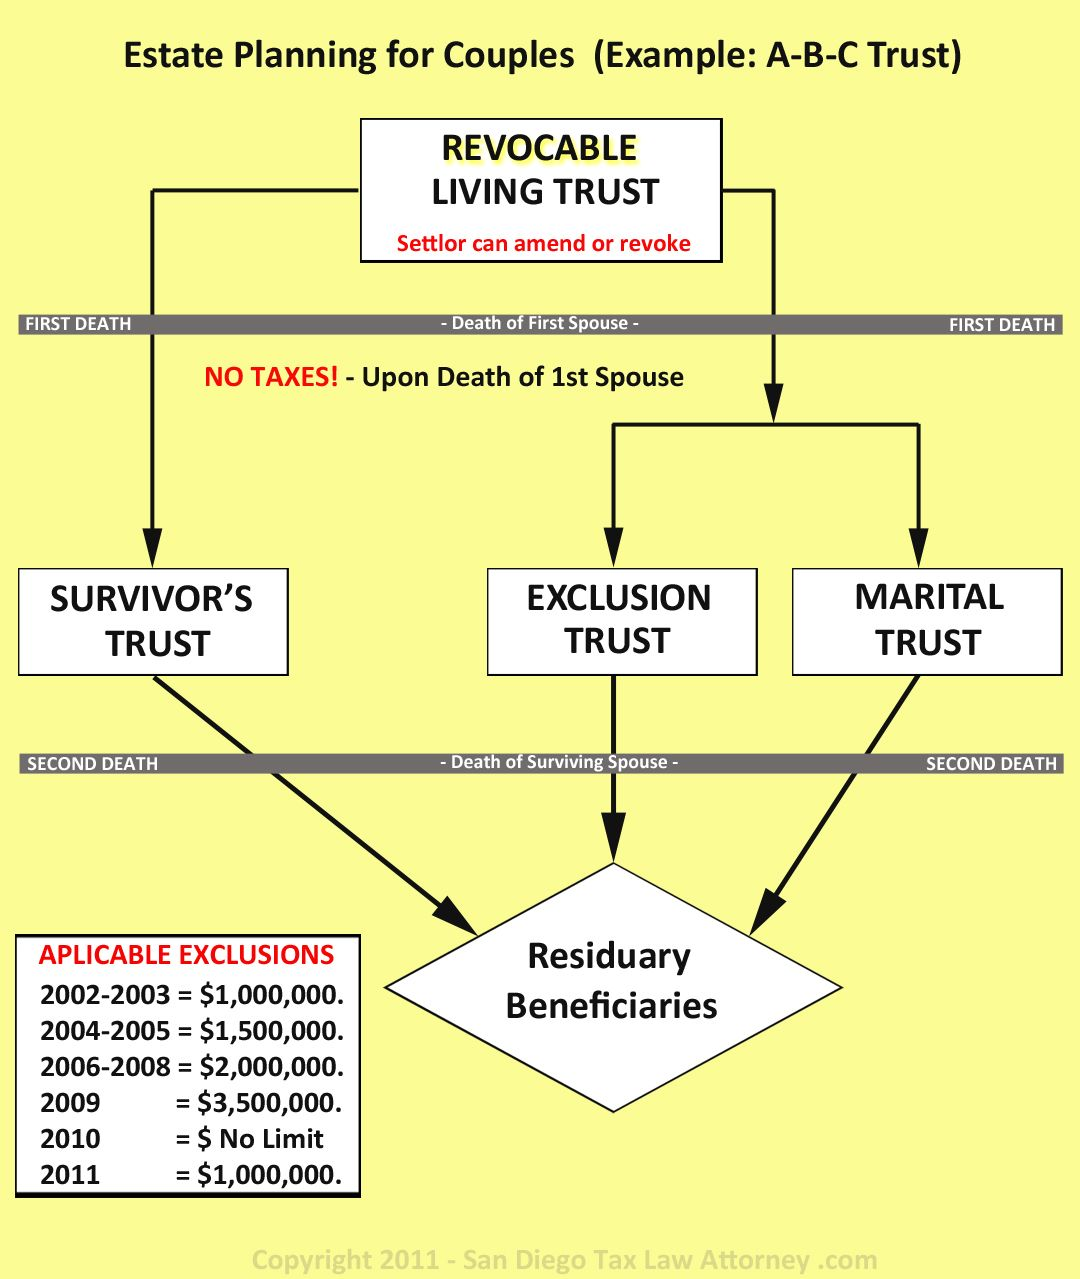 Legacy assurance plan pointing about the federal estate tax and estate planning for couples a b living trusts a b living trusts with an a b living trust sometimes referred to as an exemption or bypass trust nvjuhfo Choice Image